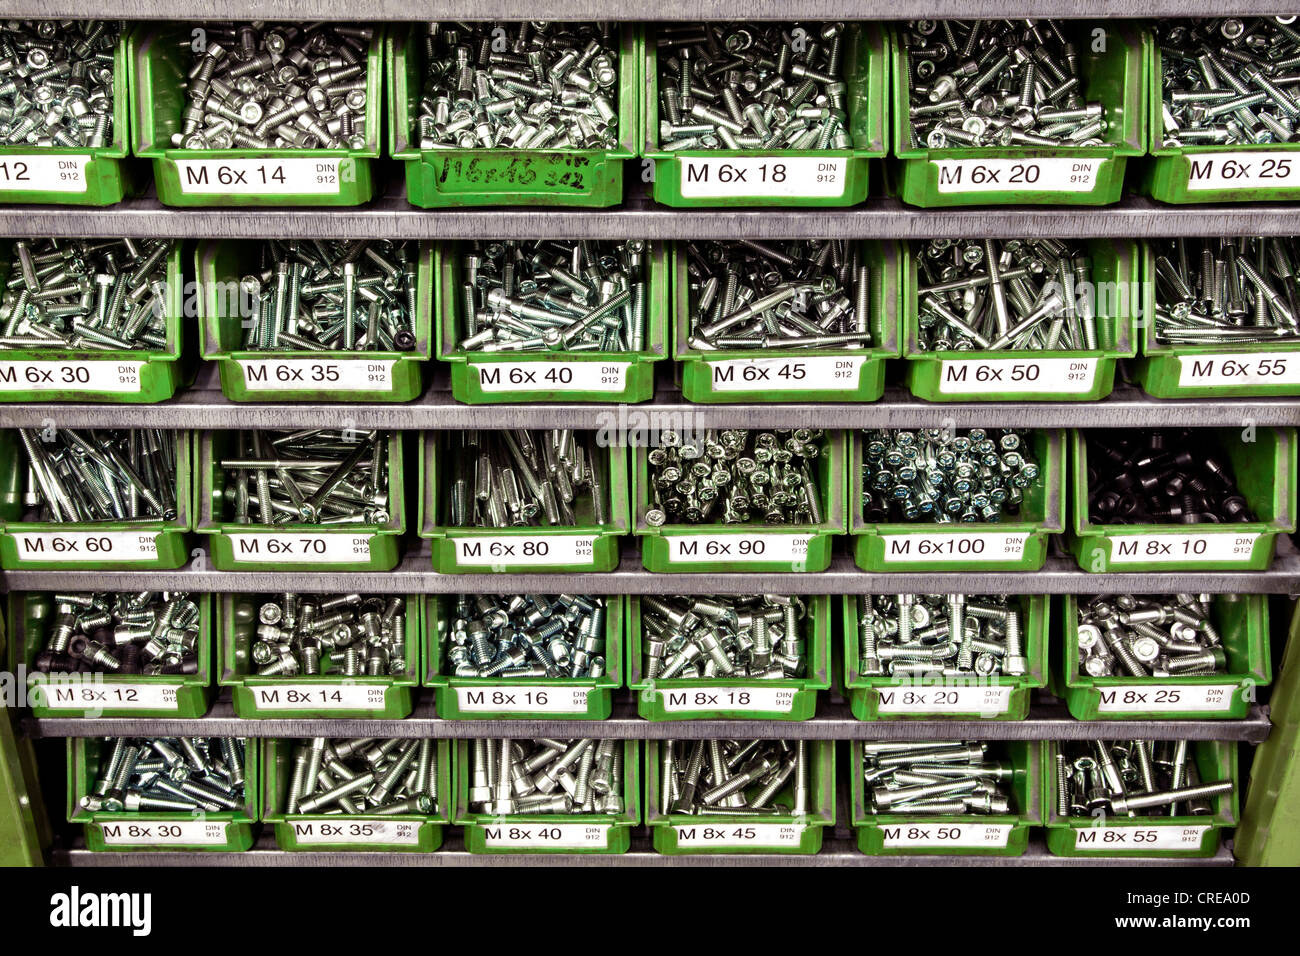 Screws of various sizes in plastic containers on a shelf - Stock Image